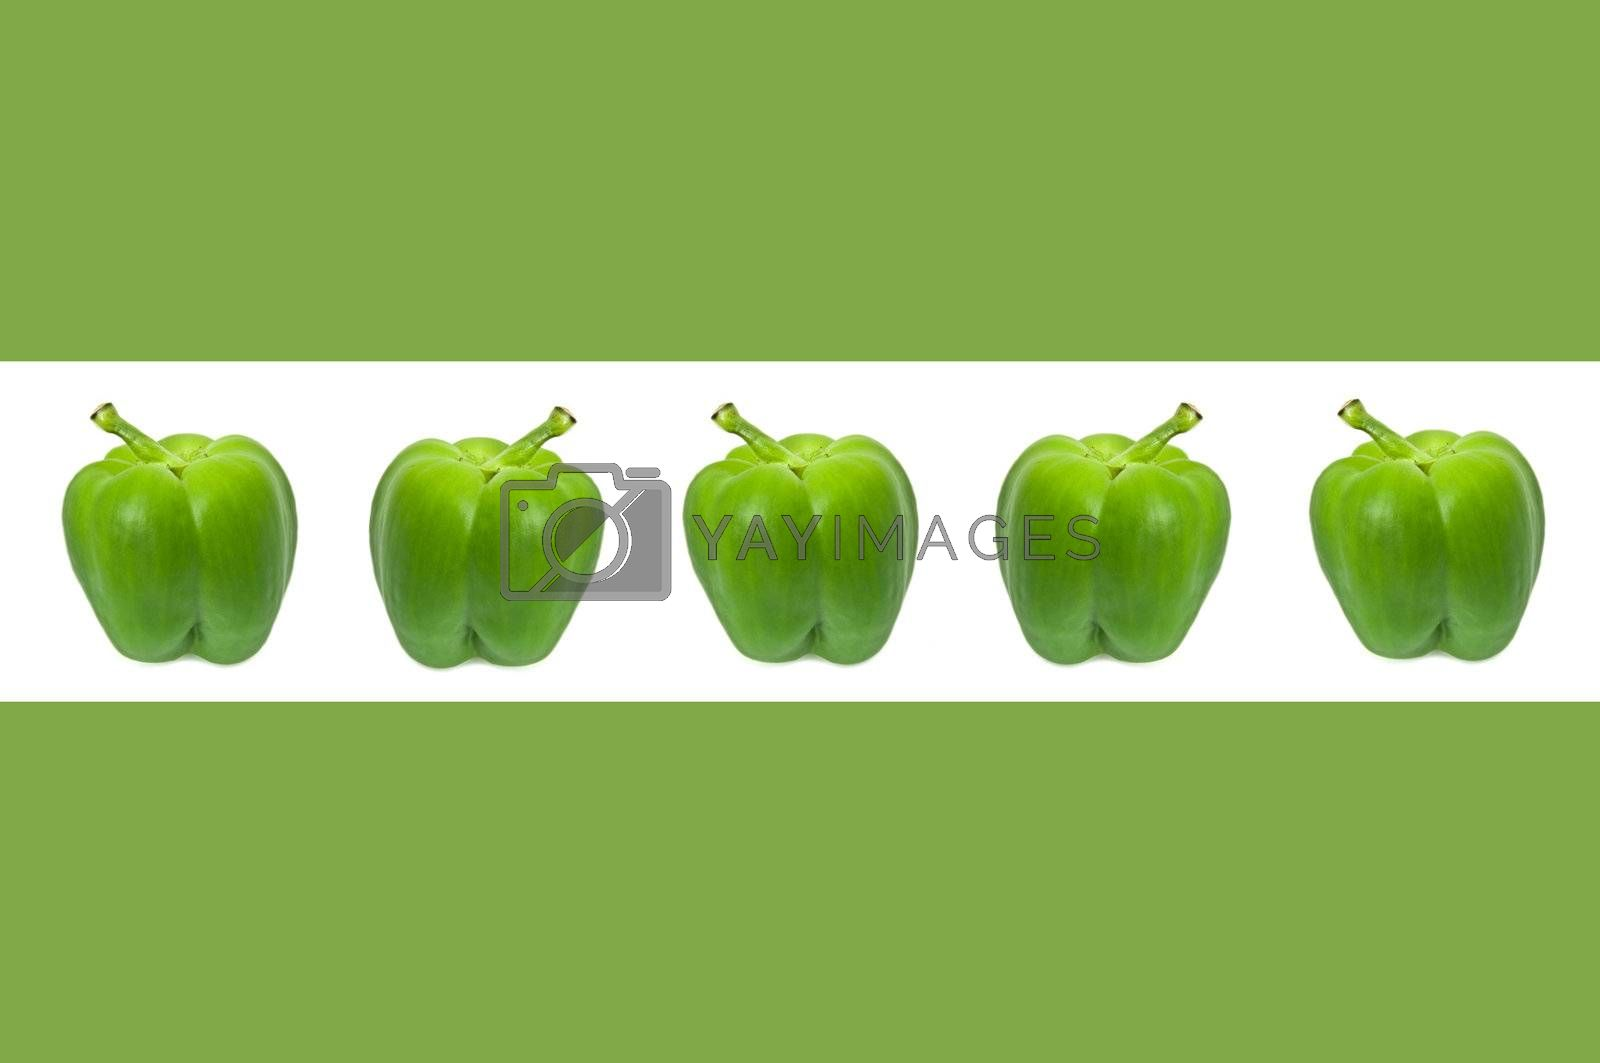 A horizontal white border accross the centre of a green image containing five small green bell peppers.